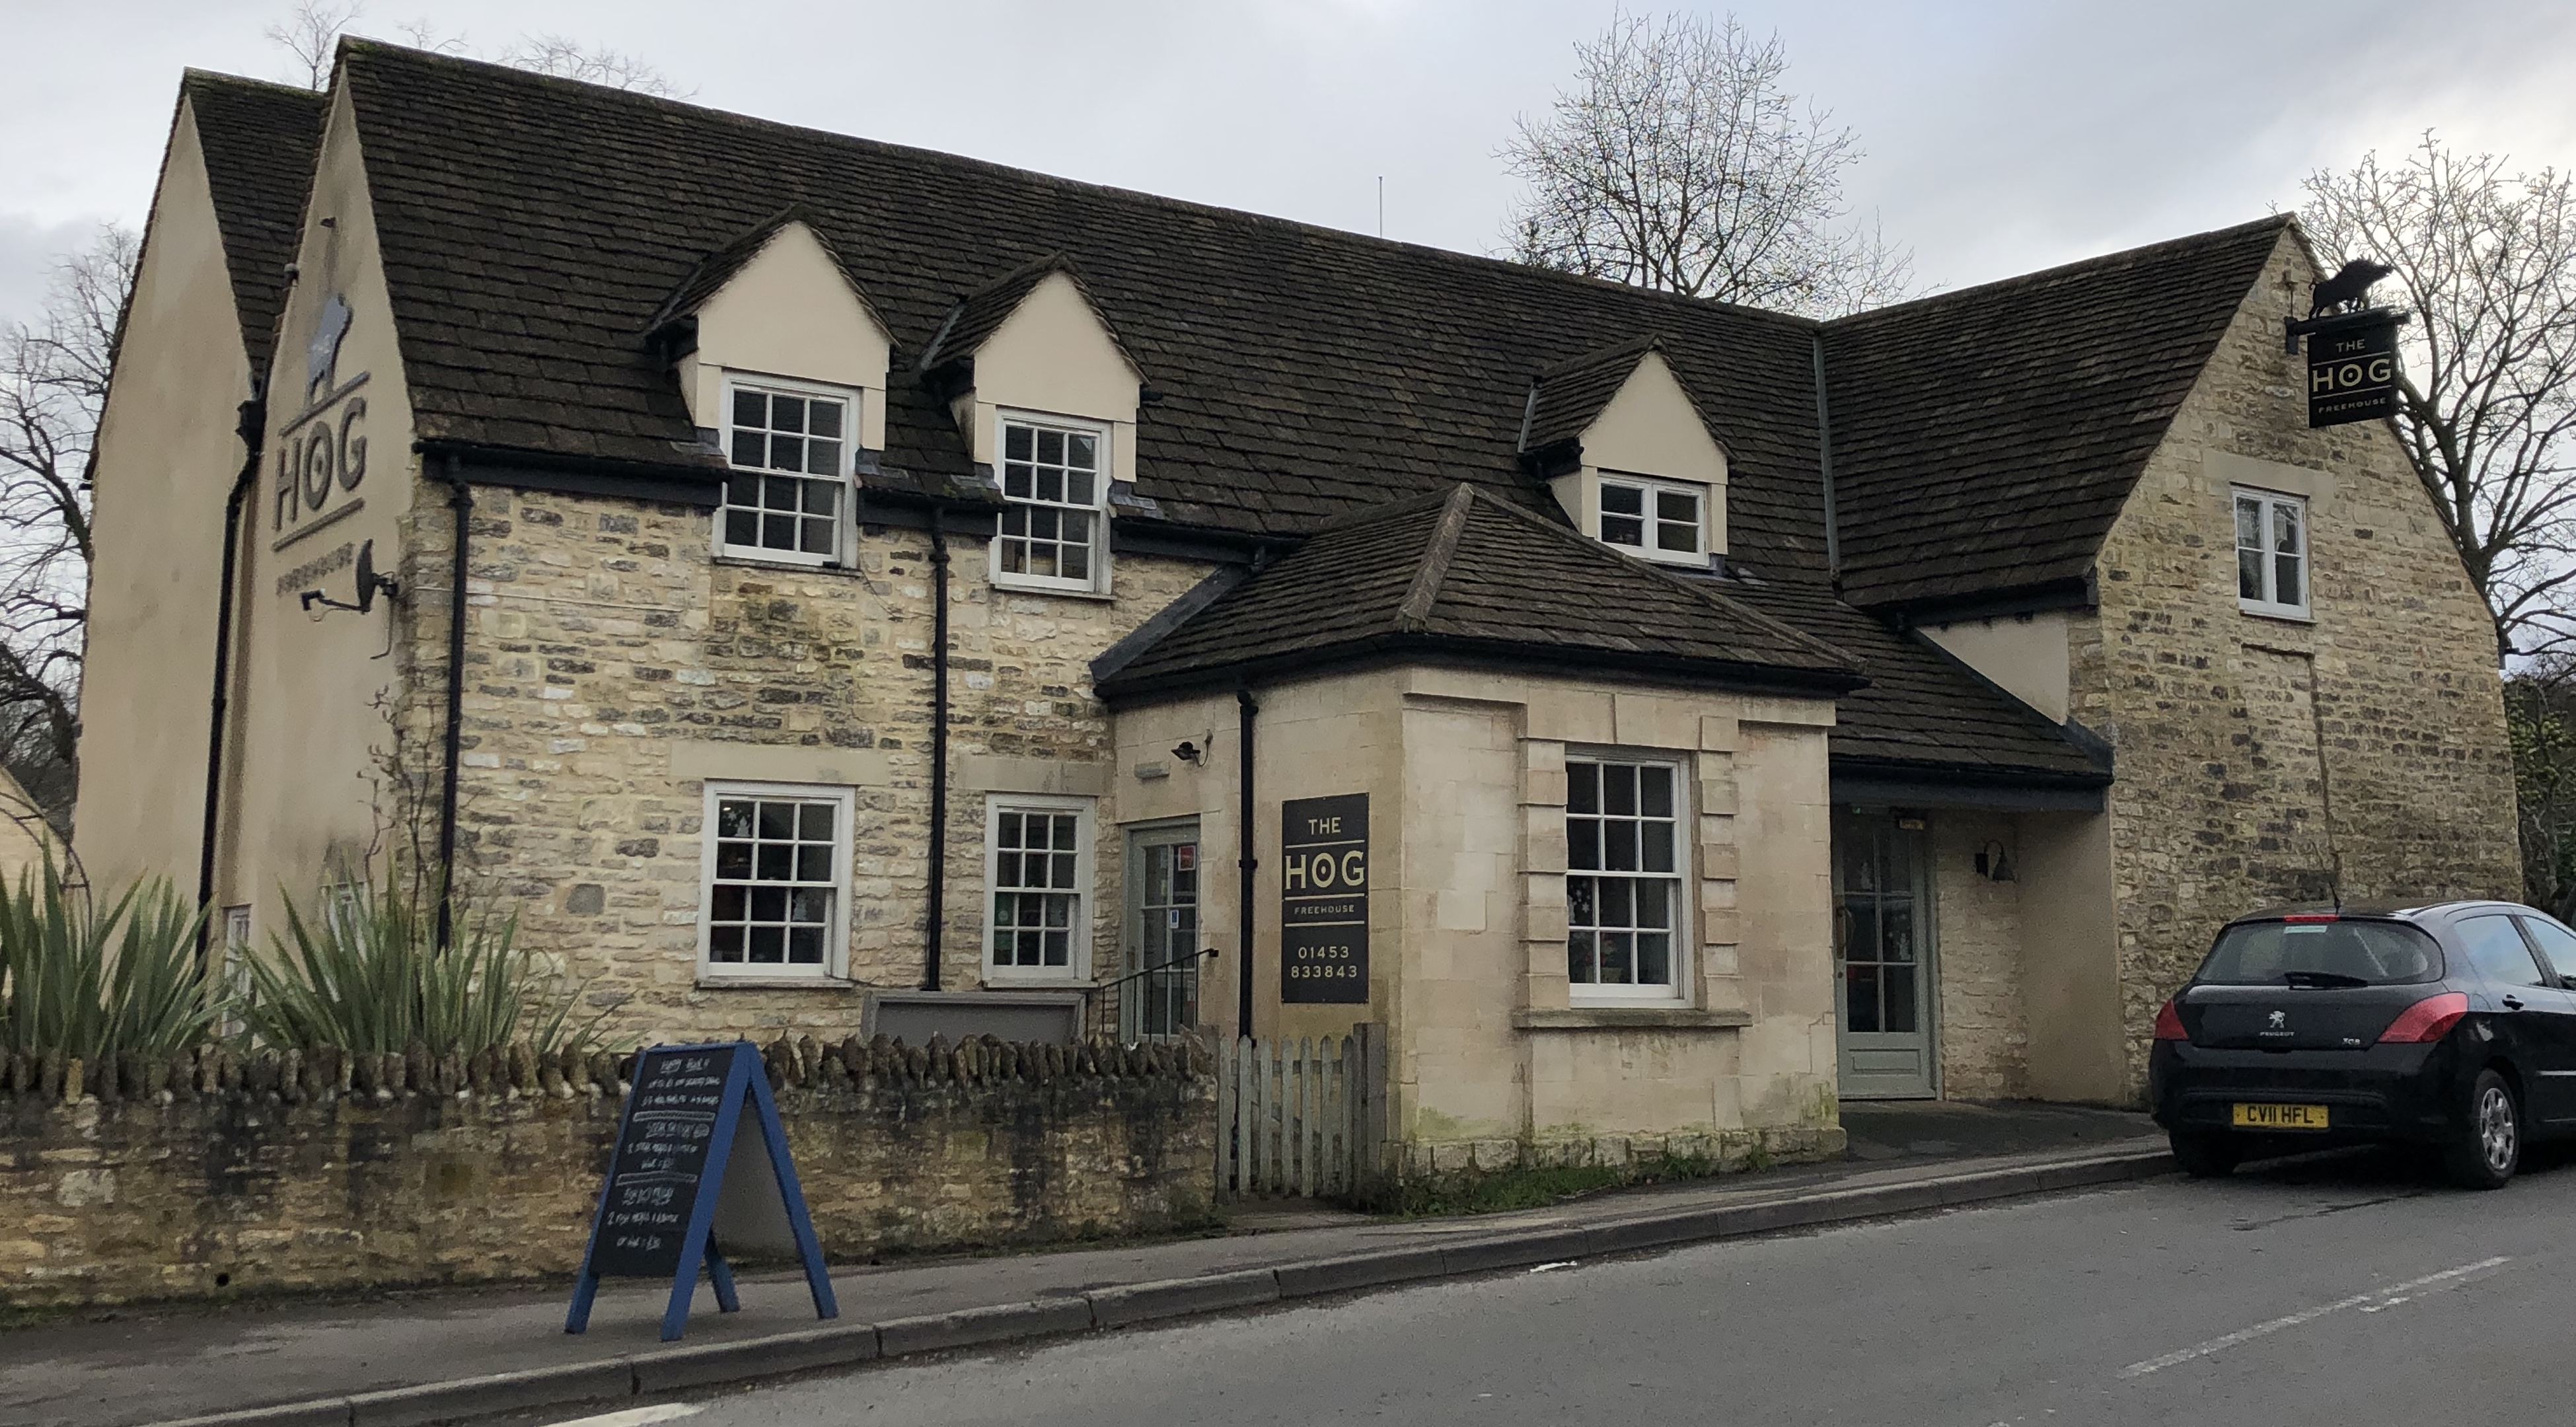 The Pub In The Centre Of The Village: The Hog